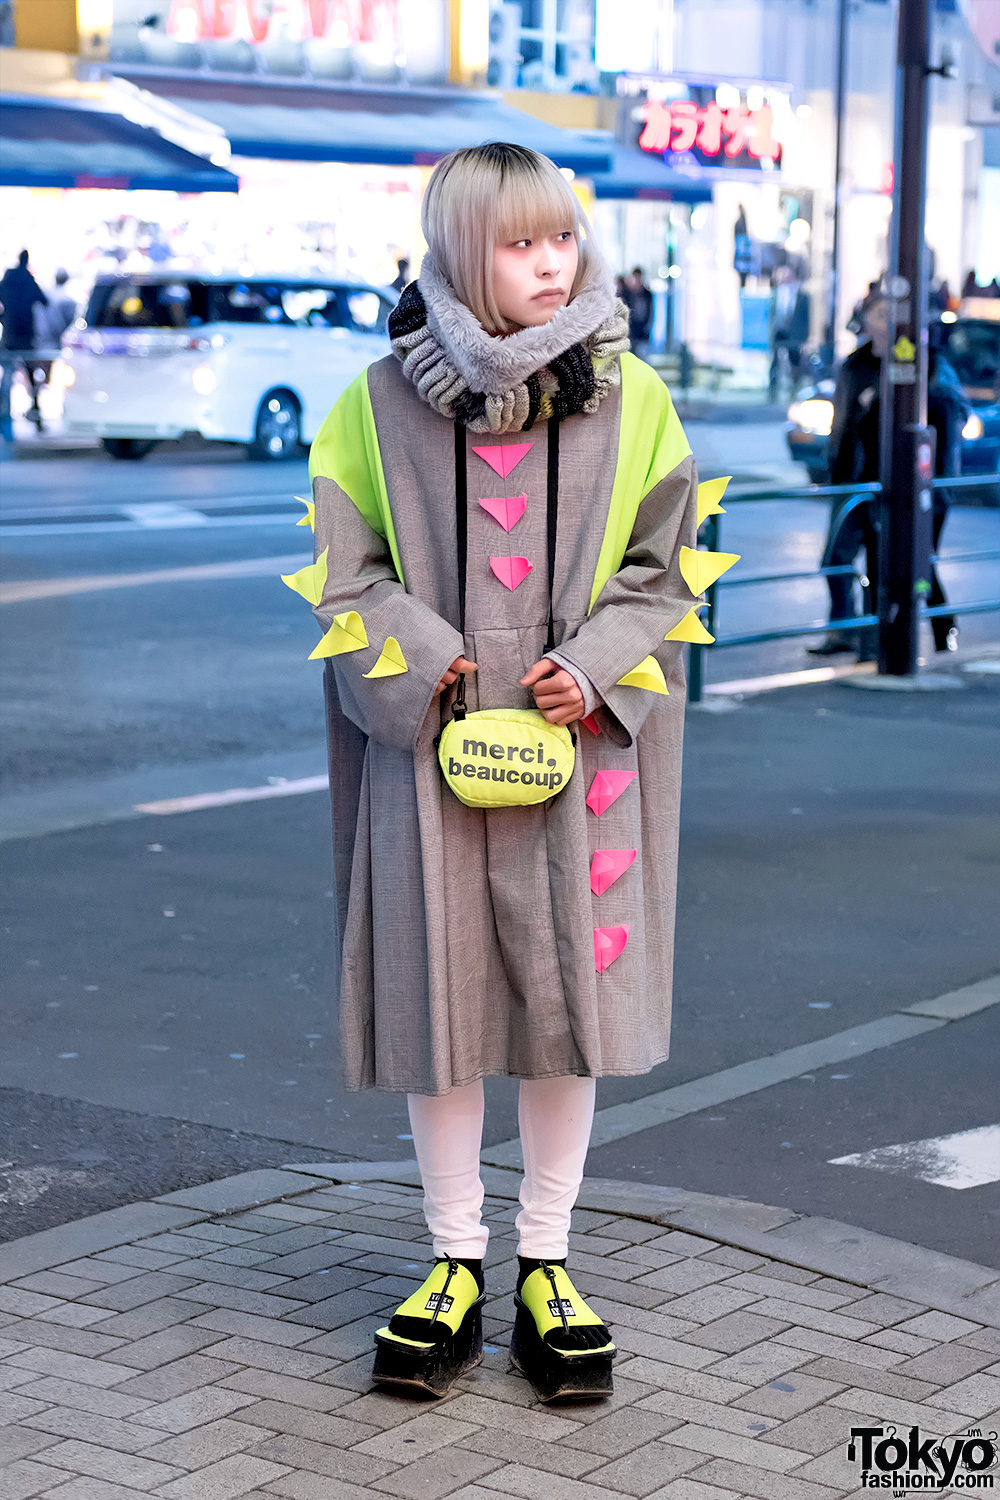 Zetsukigu Coat Neon Platform Sandals Mercibeaucoup Bag